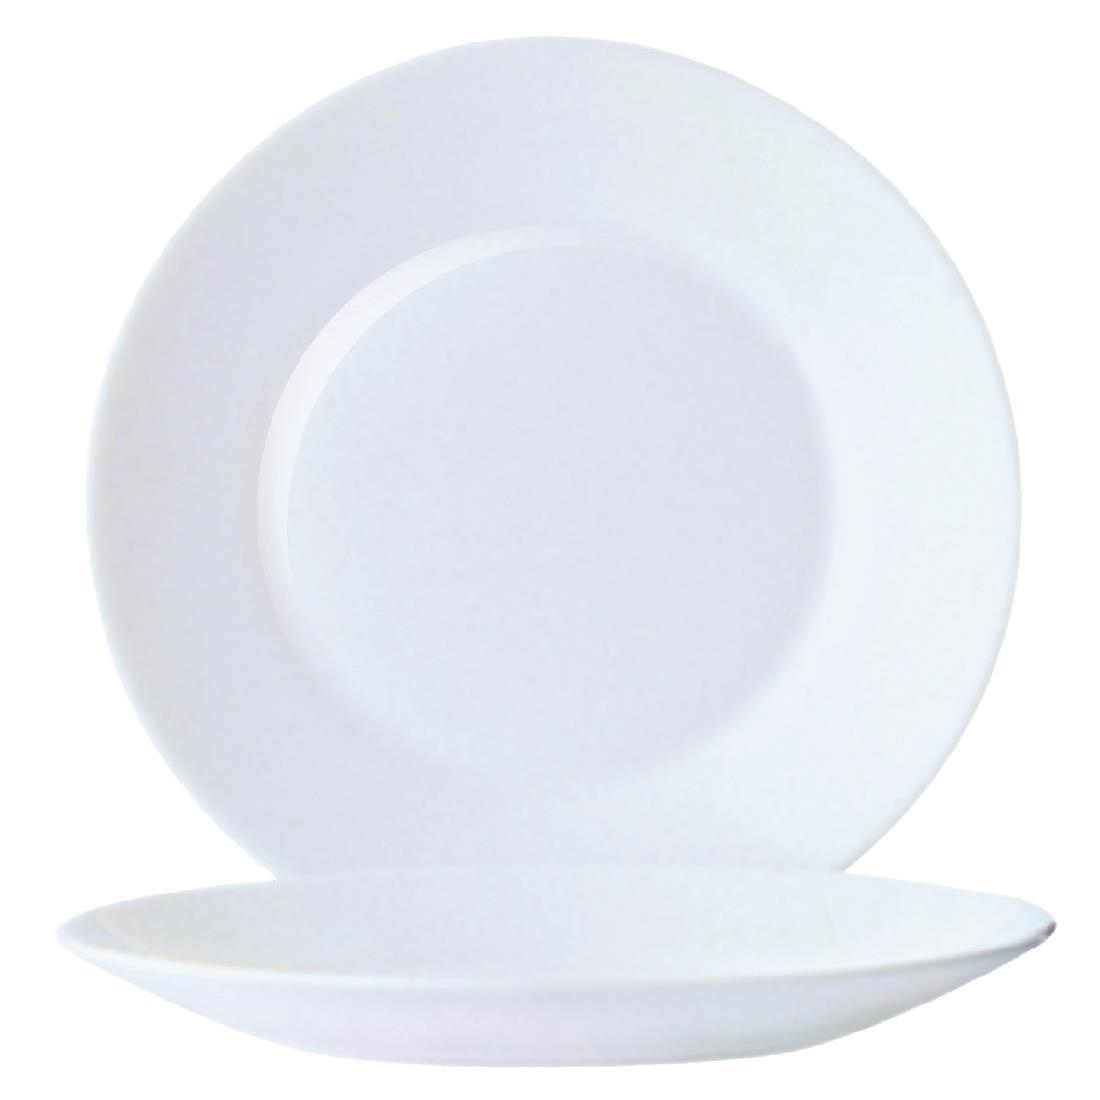 Image of Arcoroc Opal Restaurant Wide Rim Plates 195mm (Pack of 6) Pack of 6